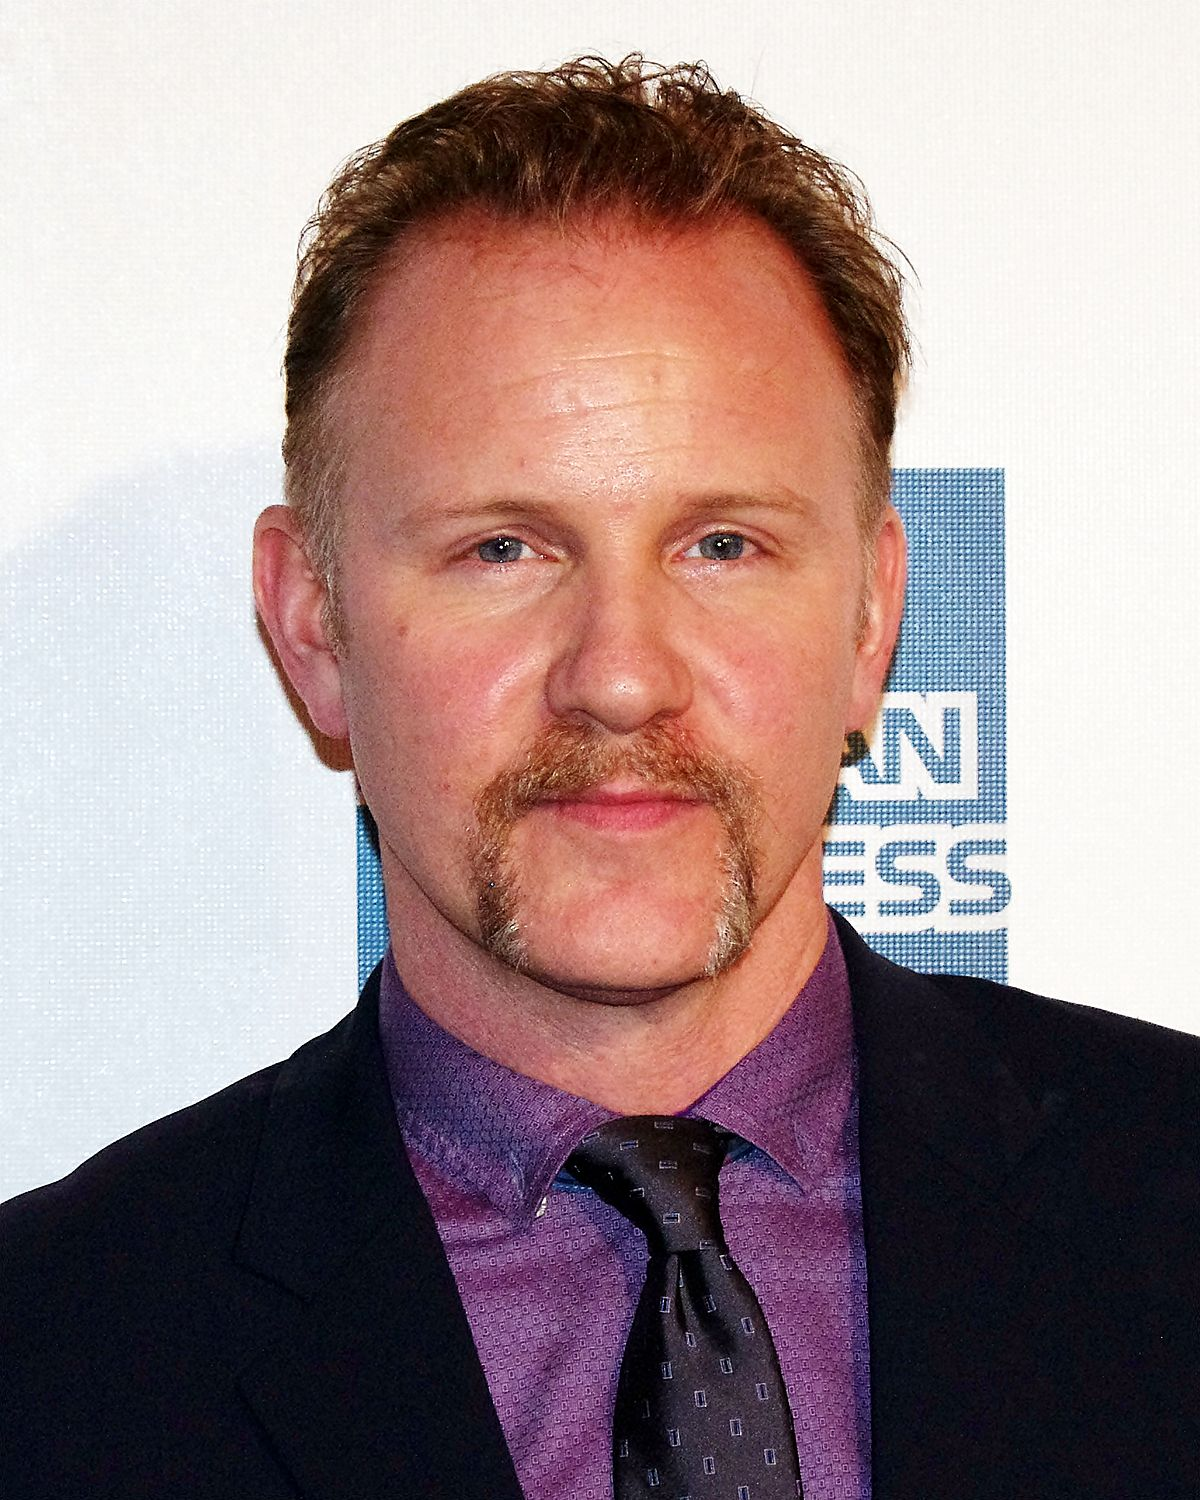 Morgan spurlock wikipedia for The morgan